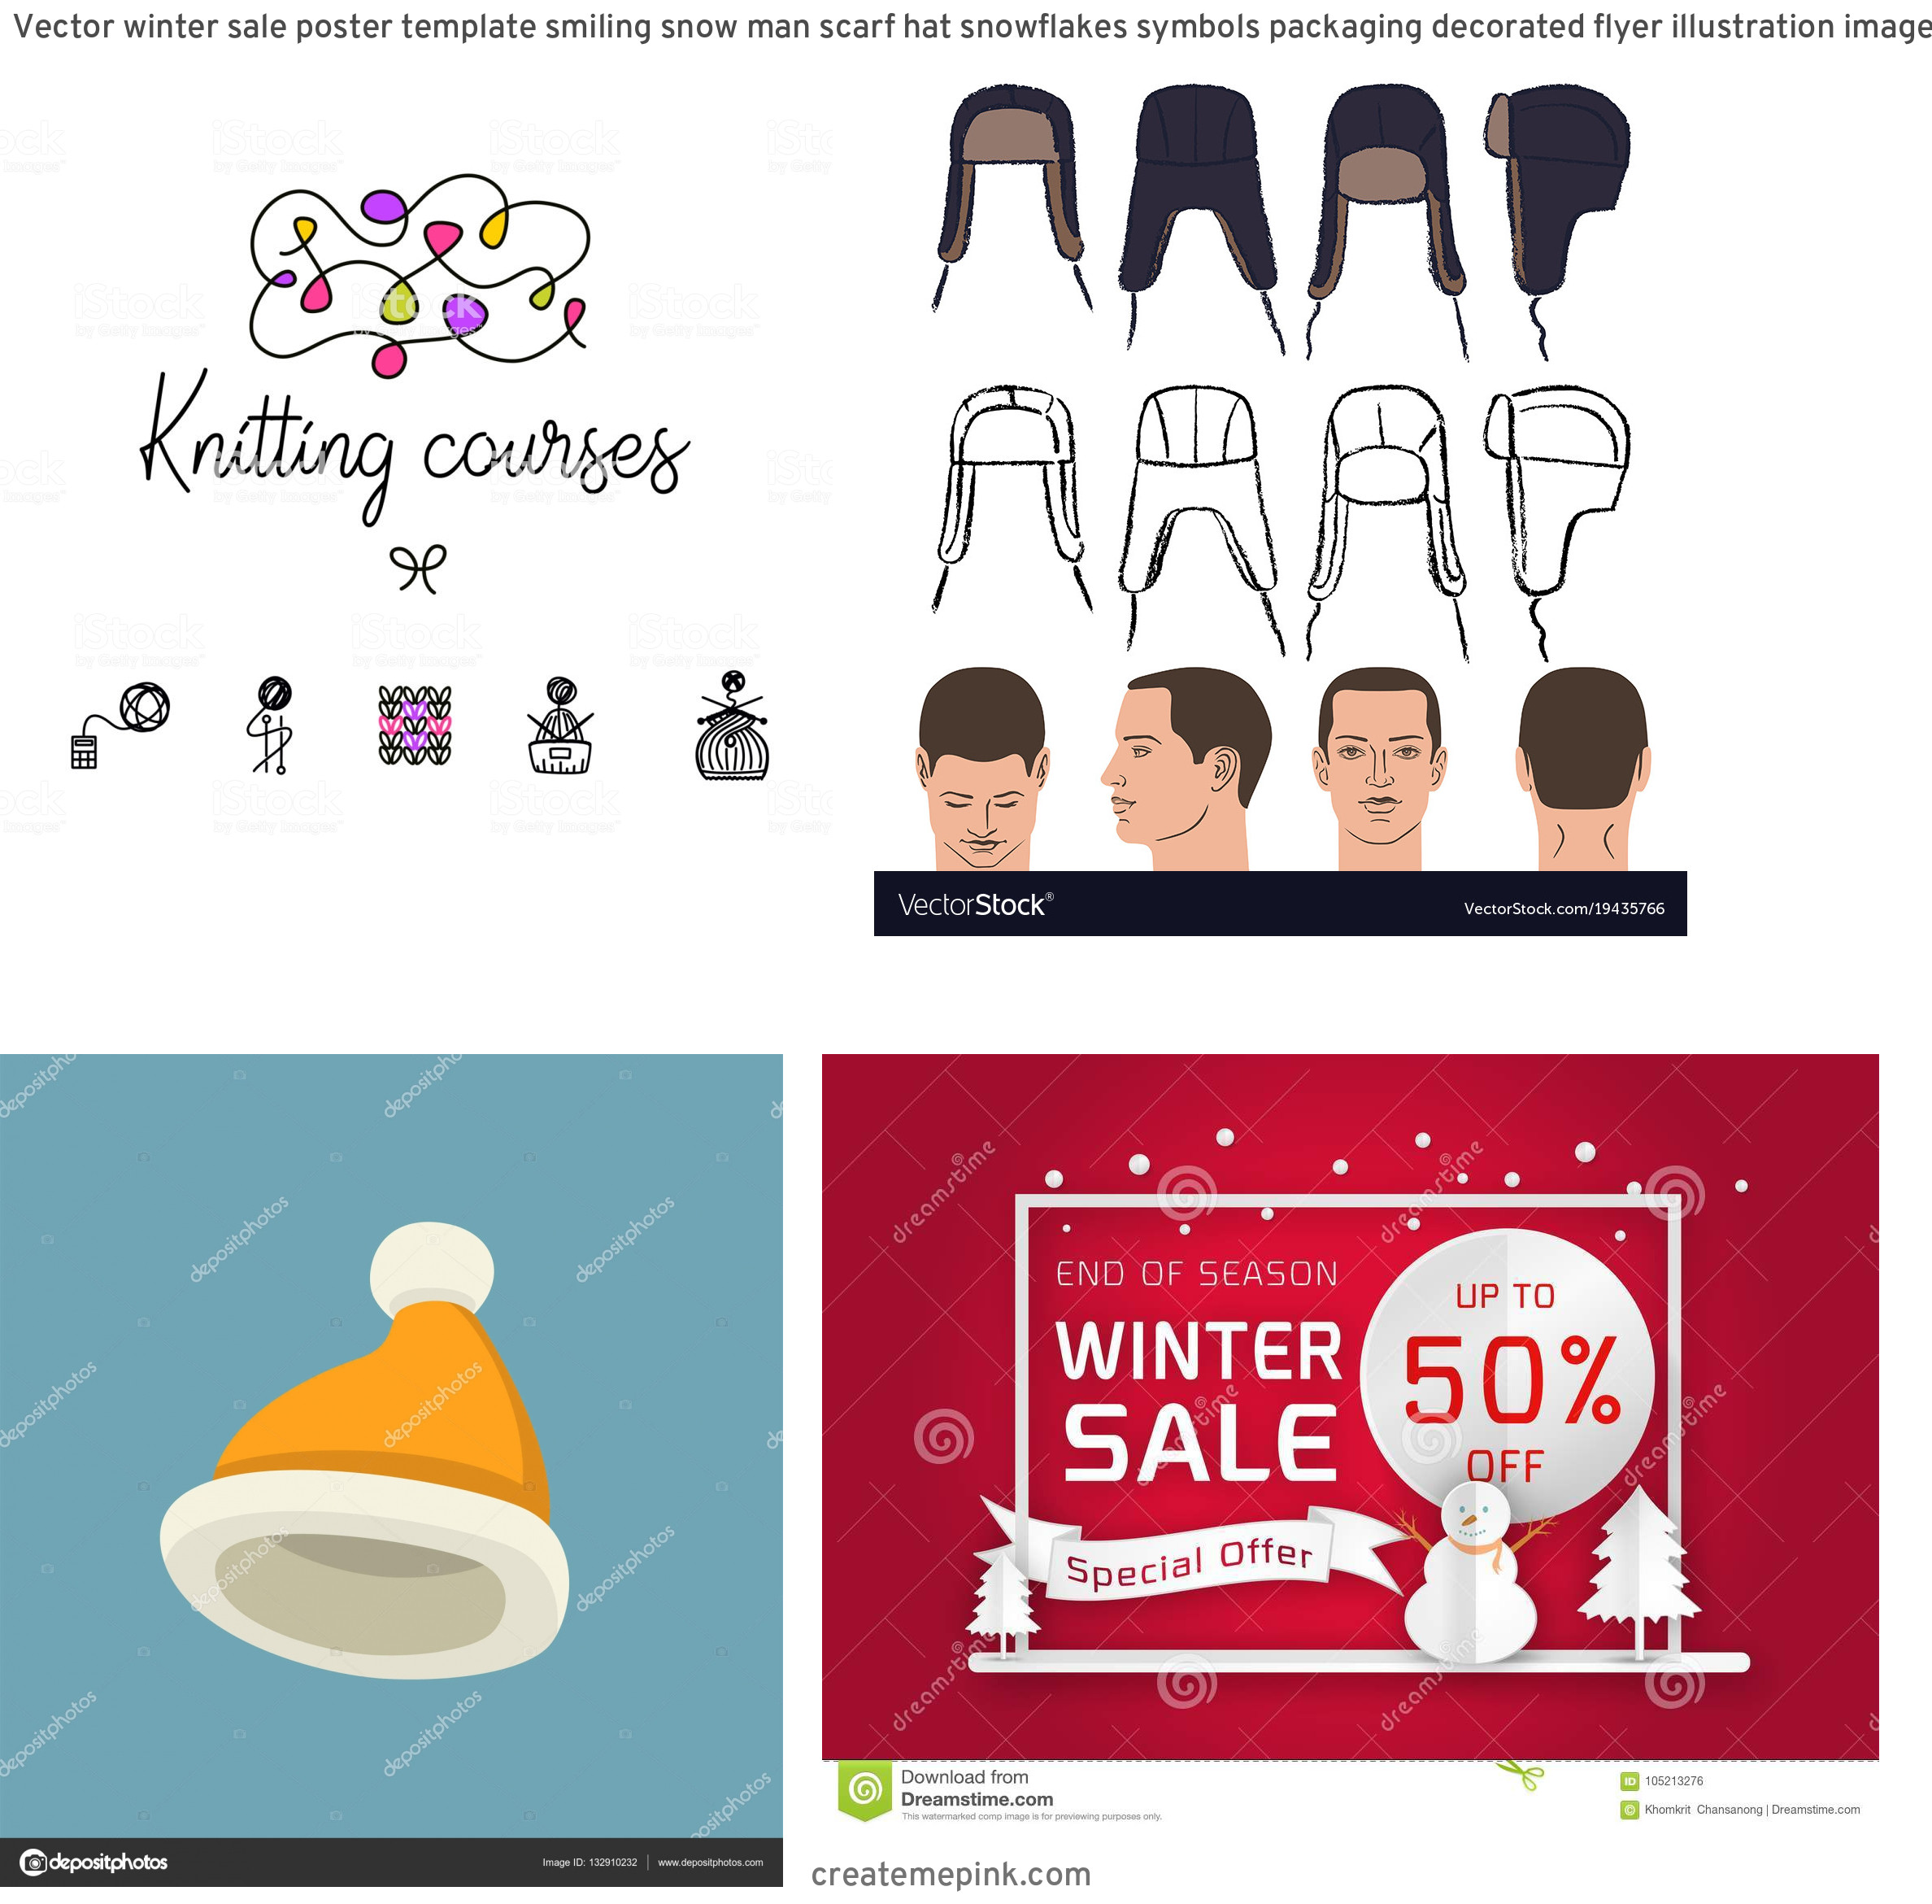 Winter Hat Vectors Templates: Vector Winter Sale Poster Template Smiling Snow Man Scarf Hat Snowflakes Symbols Packaging Decorated Flyer Illustration Image